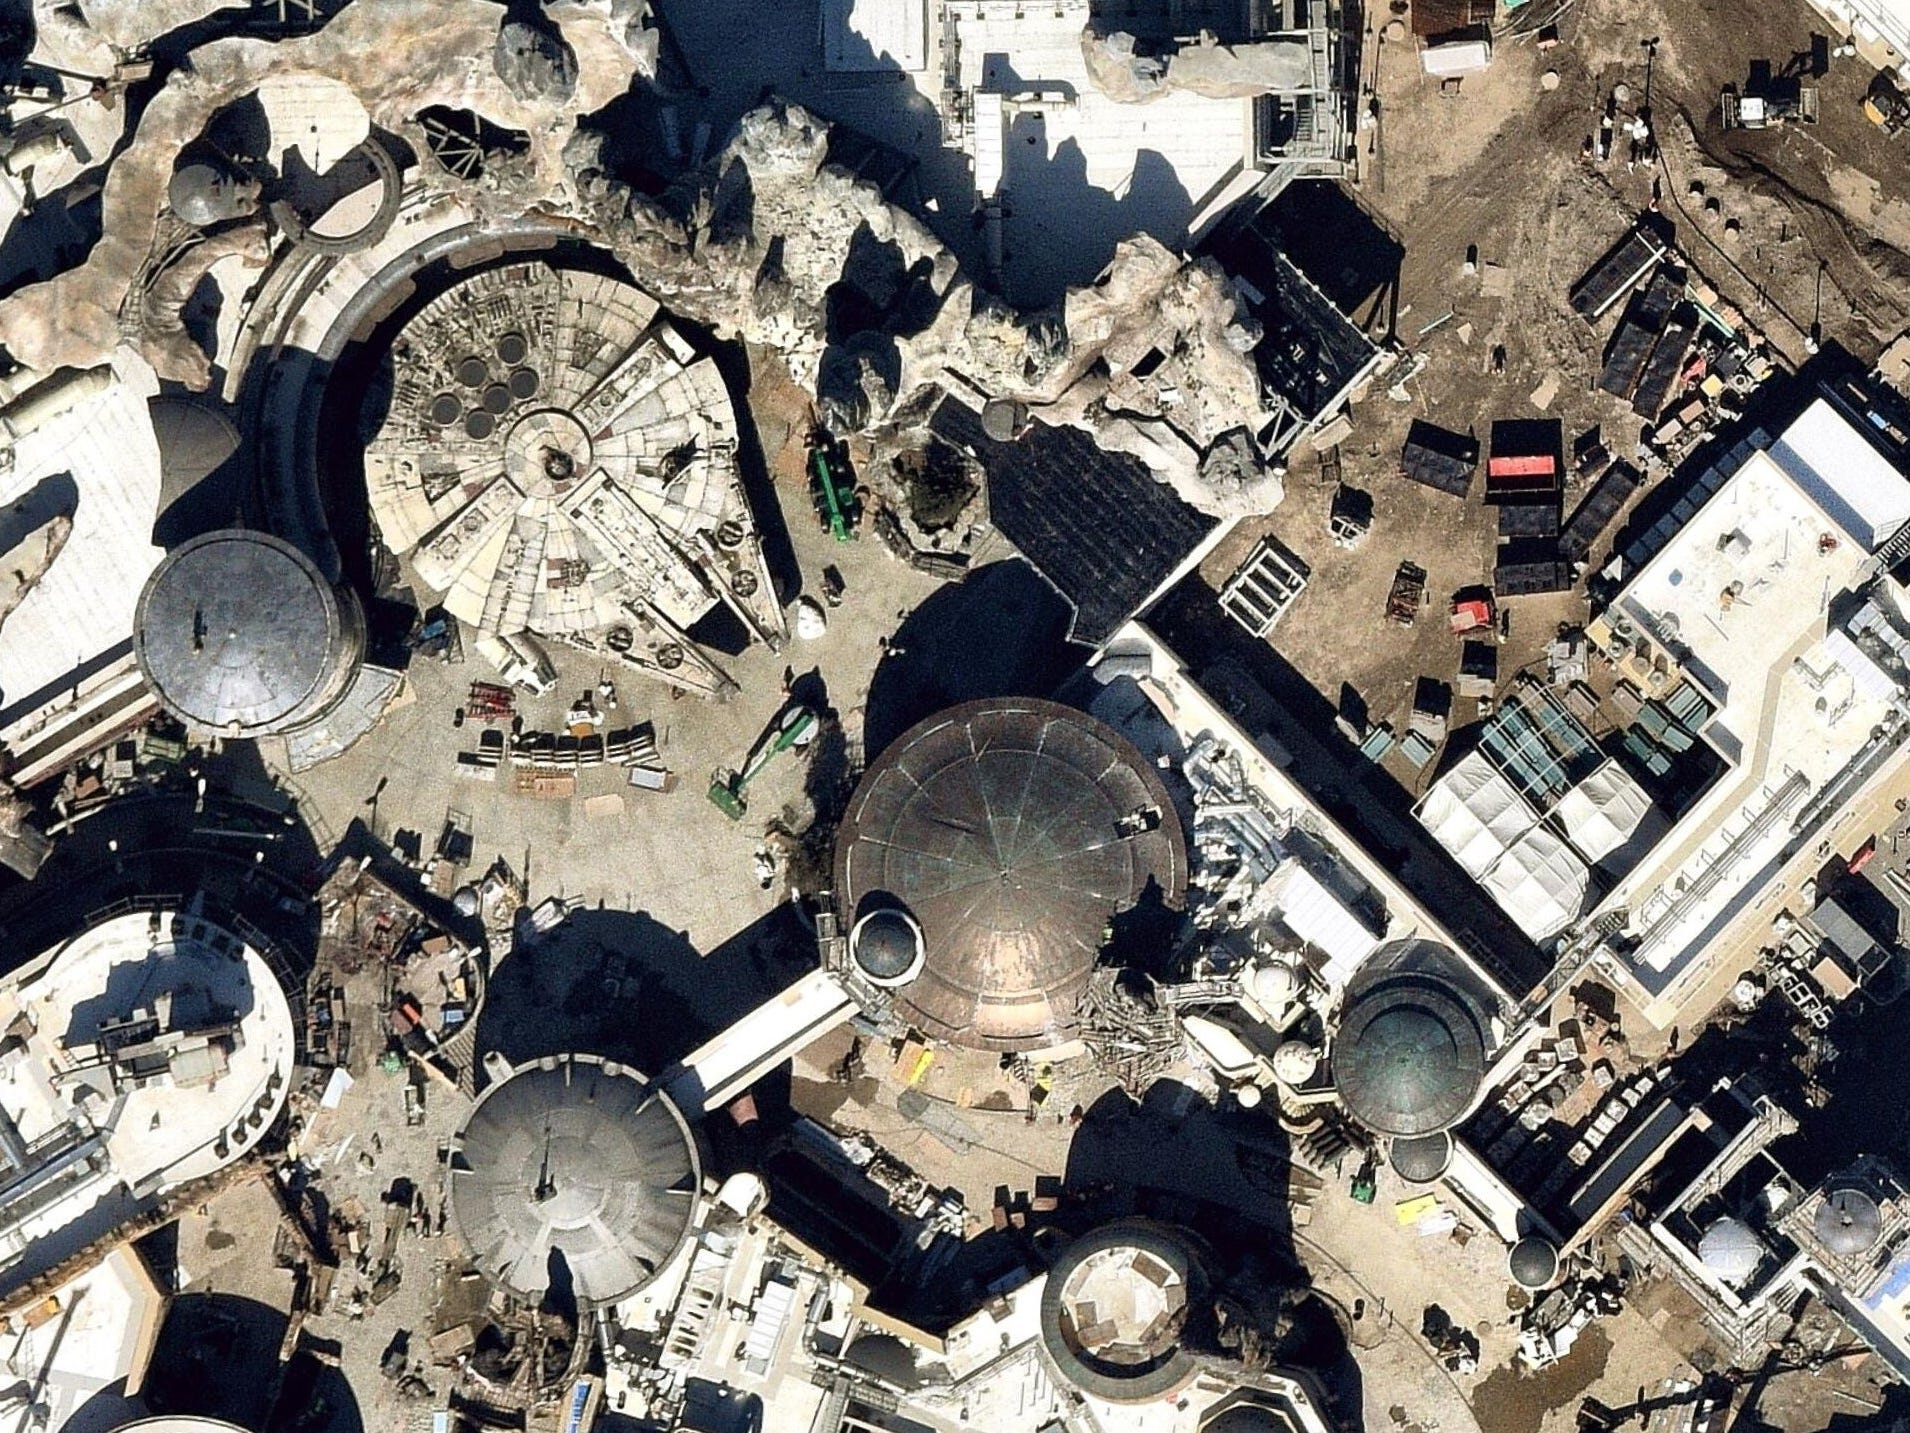 The Millennium Falcon, upper left, is parked among the marketplace of the Black Spire Outpost in Disneyland's Star Wars: Galaxy's Edge. The path leading down from the ship takes guests through shops and restaurants. The satellite image from Nearmap was taken in February 2019.